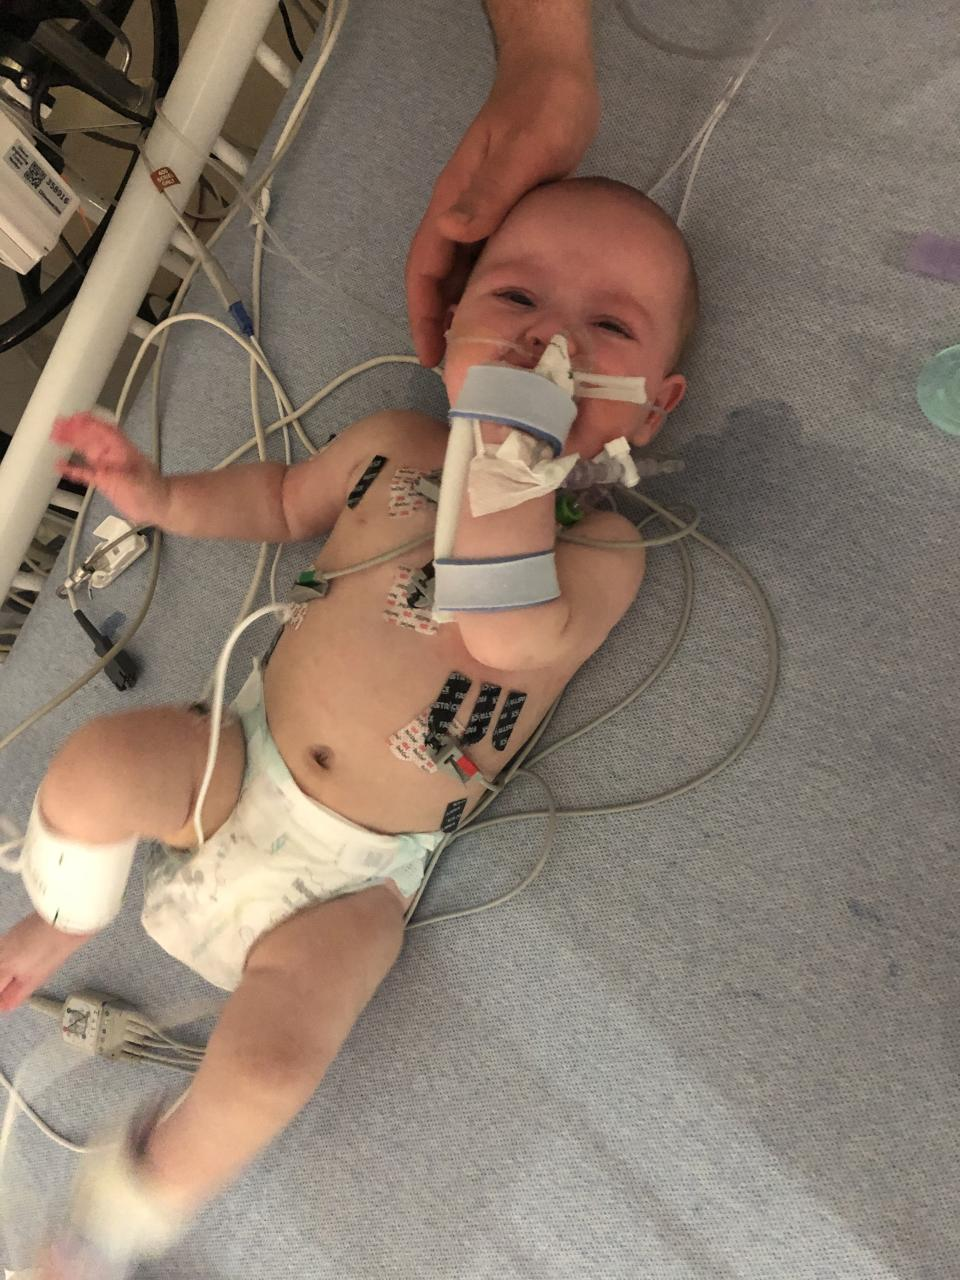 Madelyn spent nine days in hospital receiving intensive treatment. (Supplied: Cleveland Clinic)